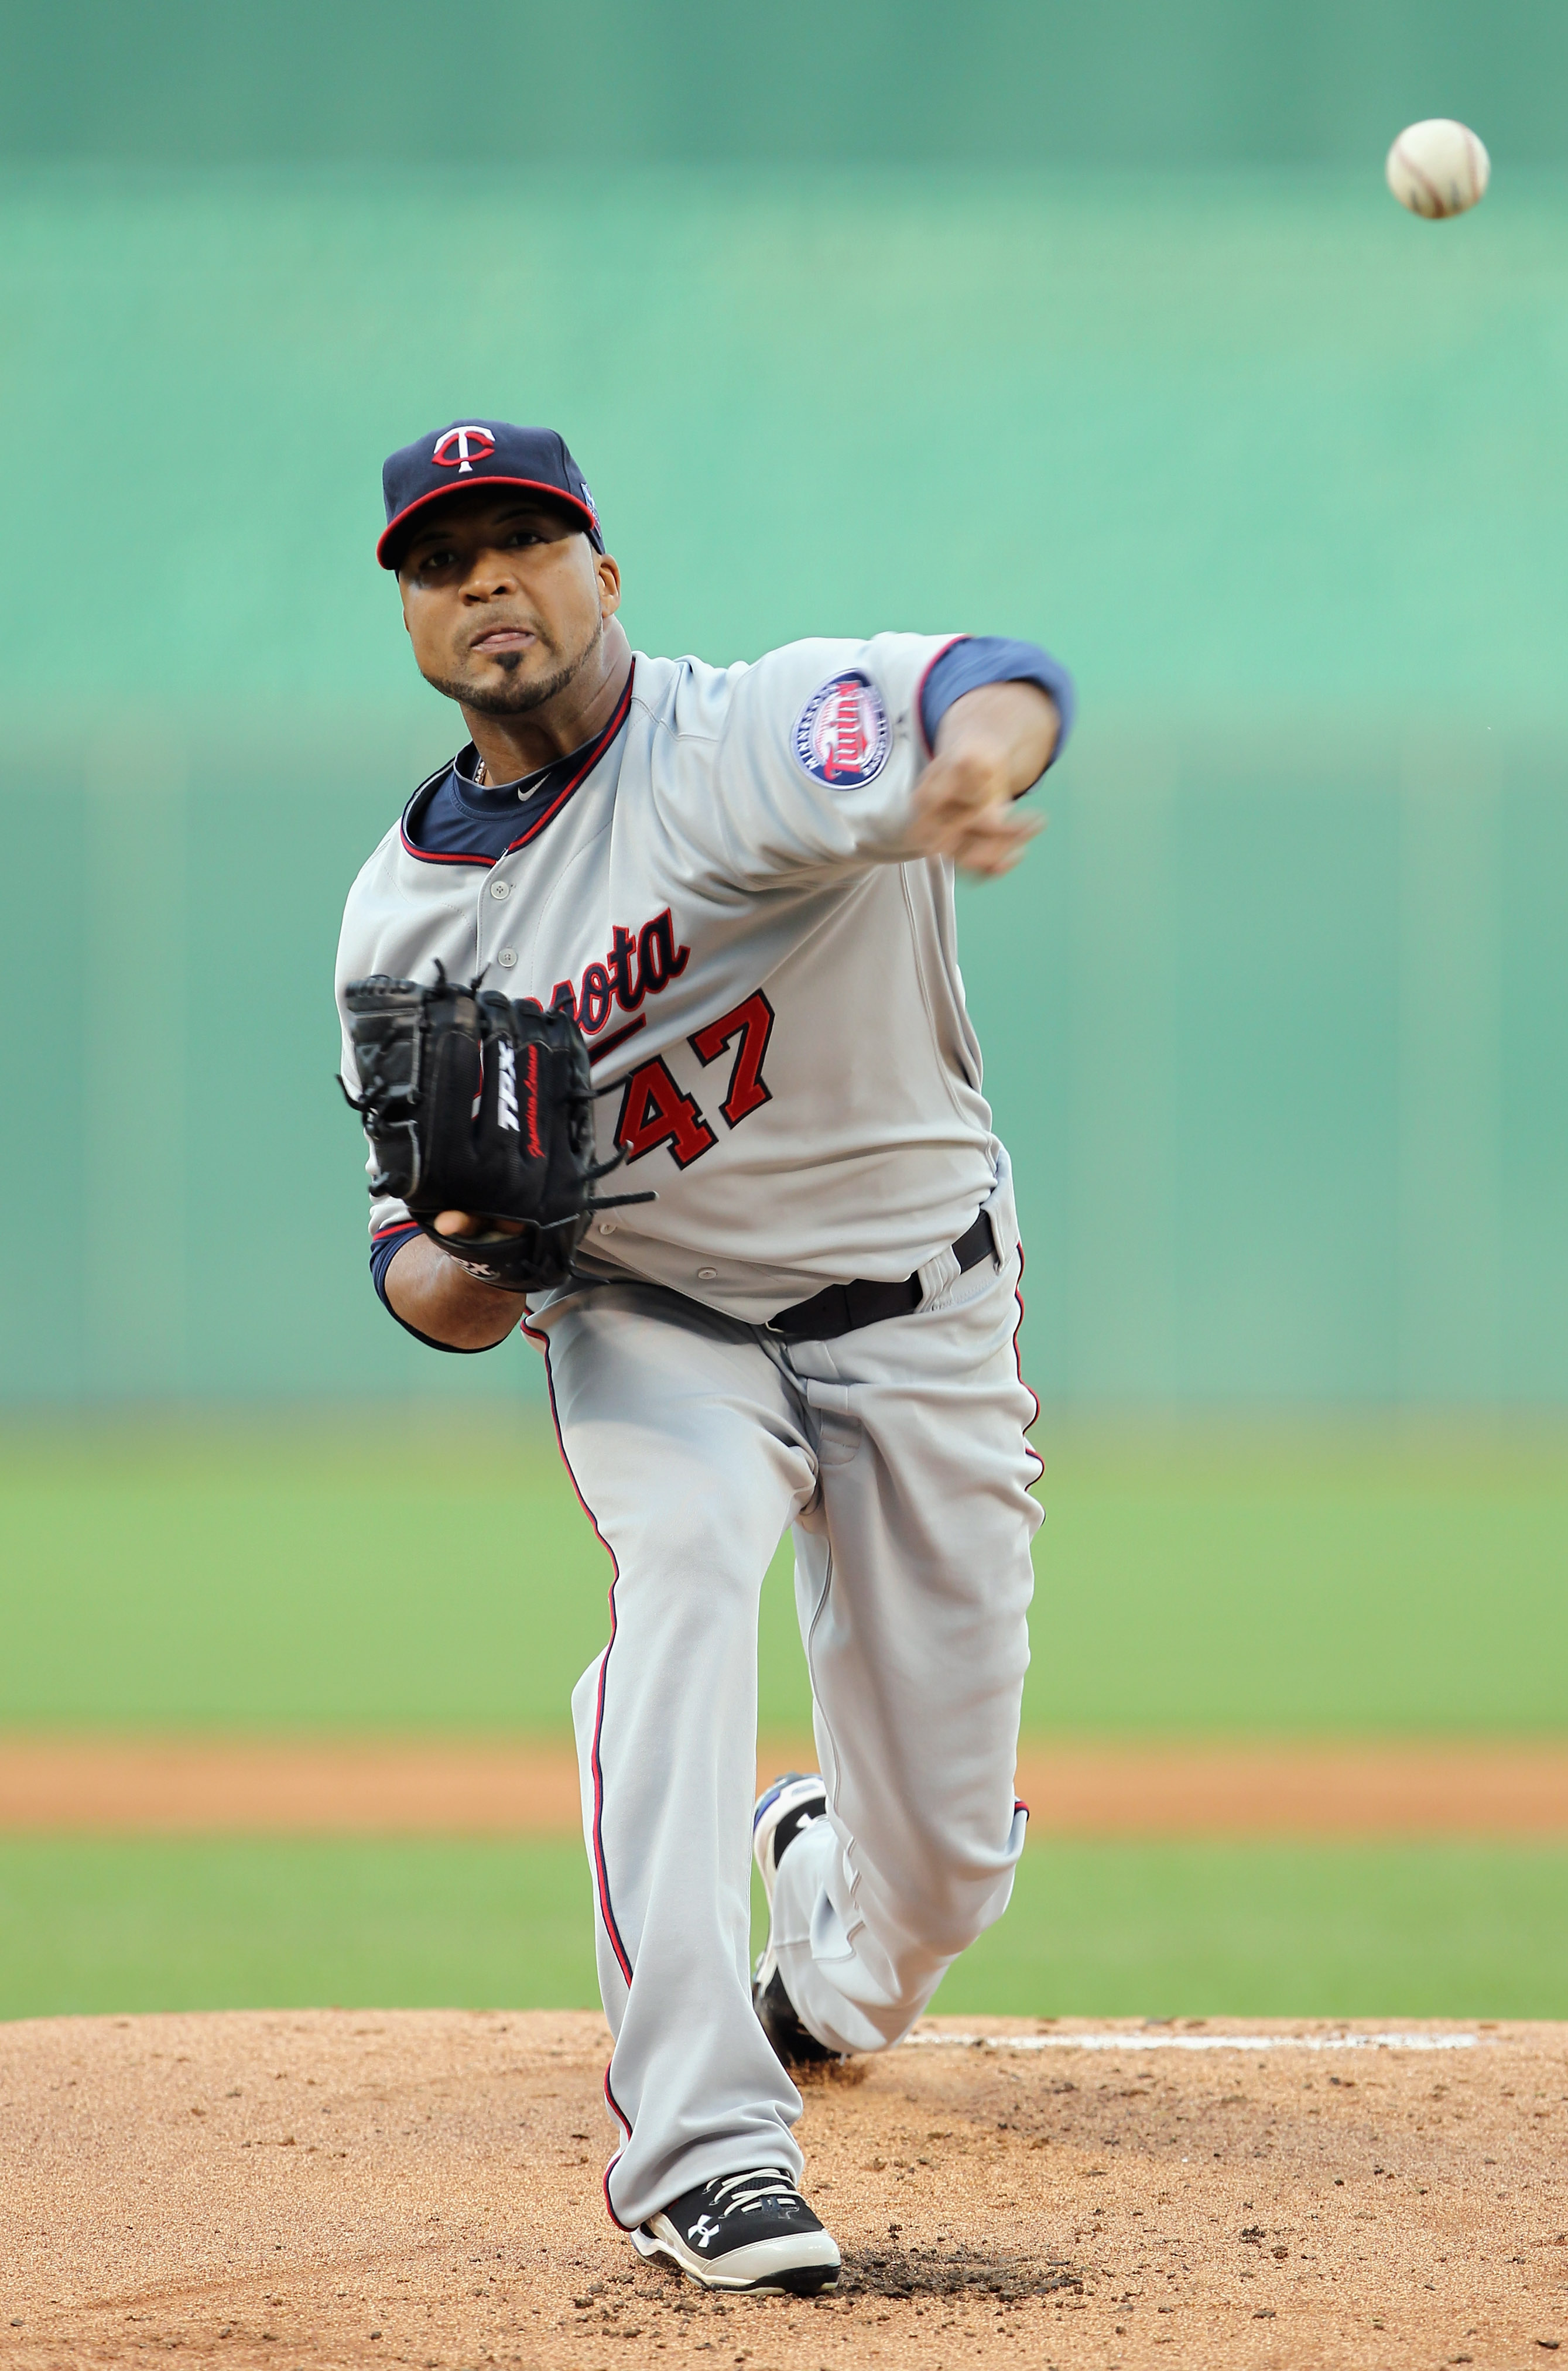 KANSAS CITY, MO - JULY 26:  Starting pitcher Francisco Liriano #47 of the Minnesota Twins warms-up just prior to the start of the game against the Kansas City Royals on July 26, 2010 at Kauffman Stadium in Kansas City, Missouri.  (Photo by Jamie Squire/Ge